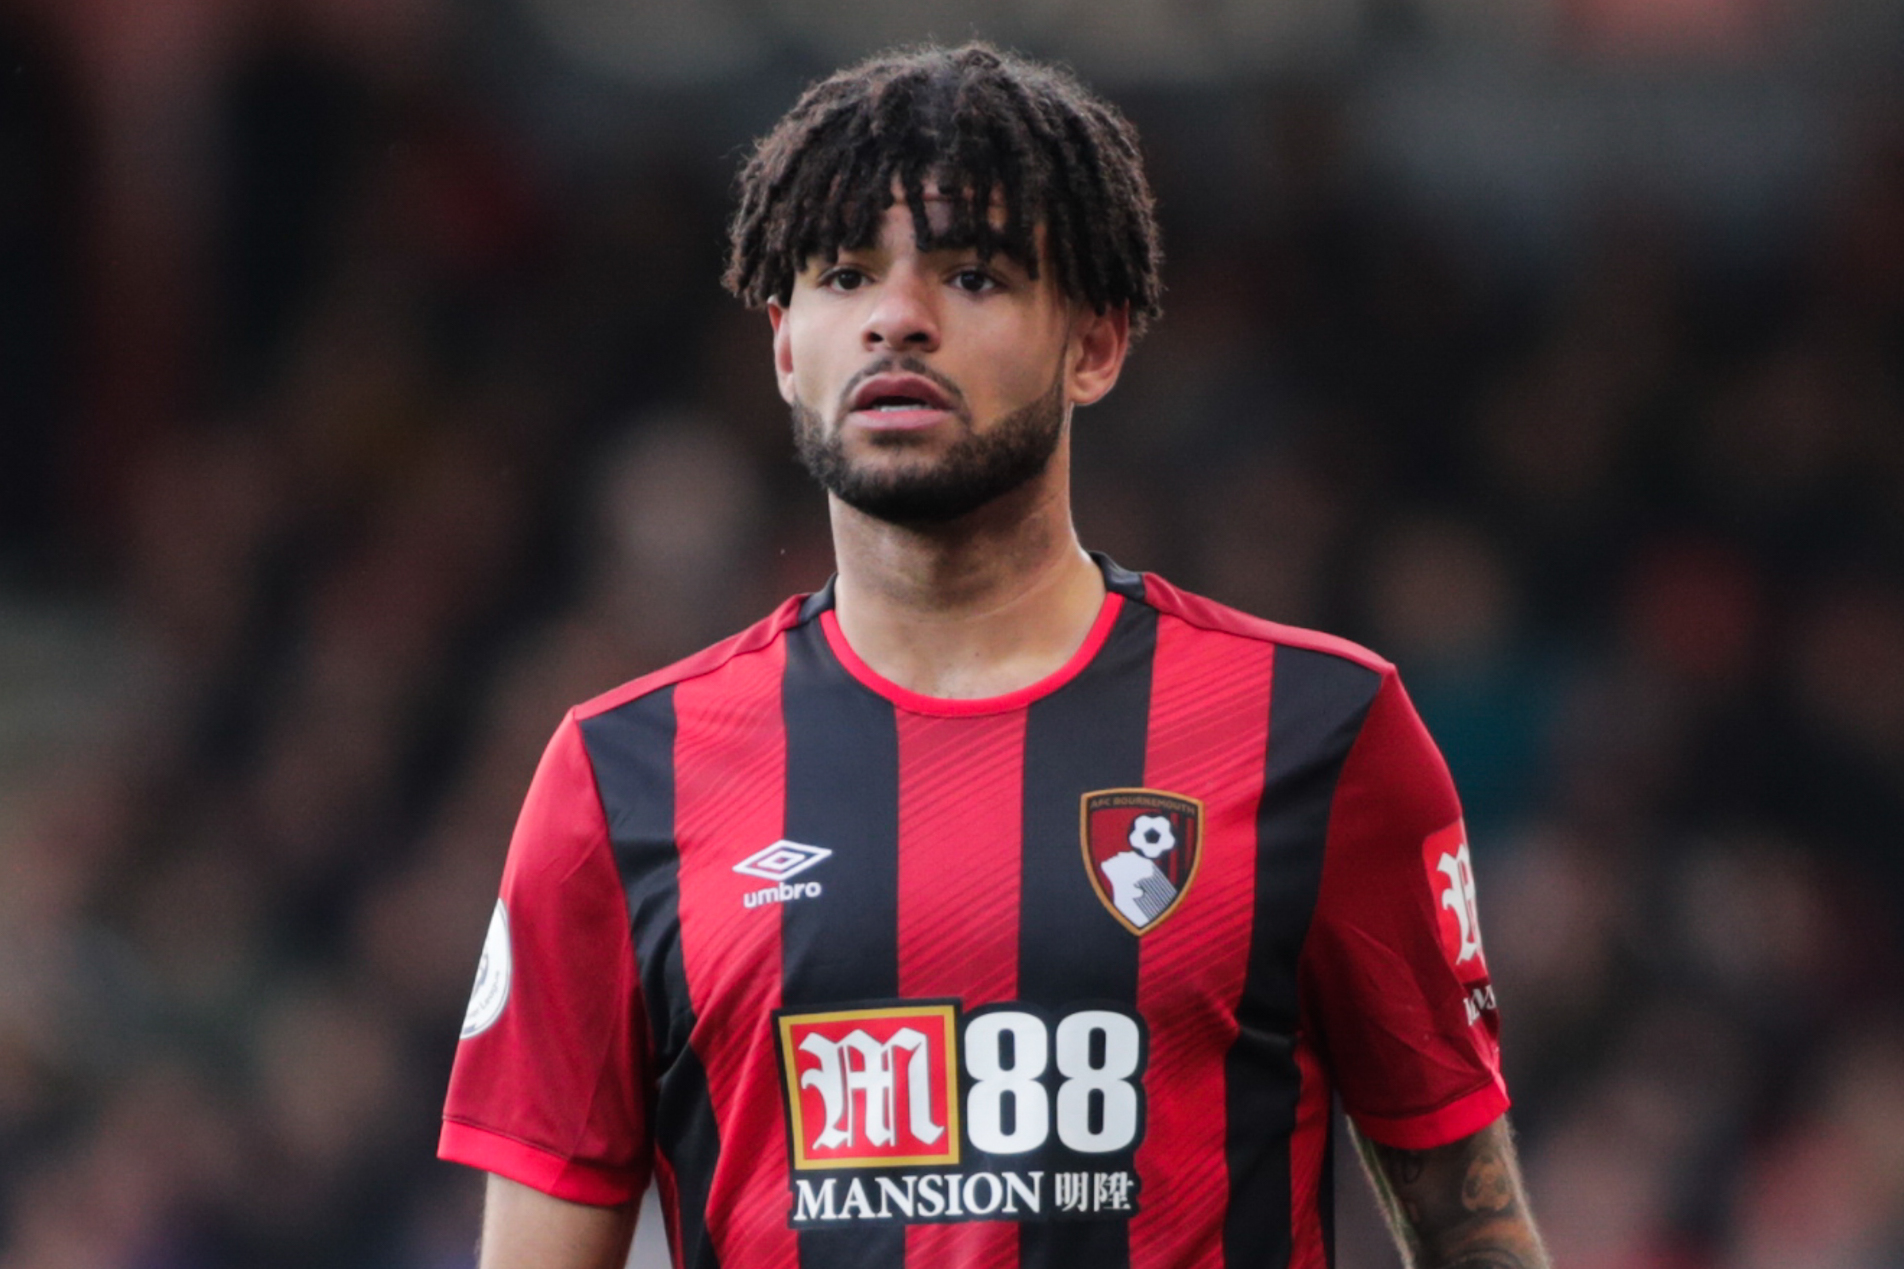 Cherries increase security measures around players' homes after Philip Billing's property is burgled